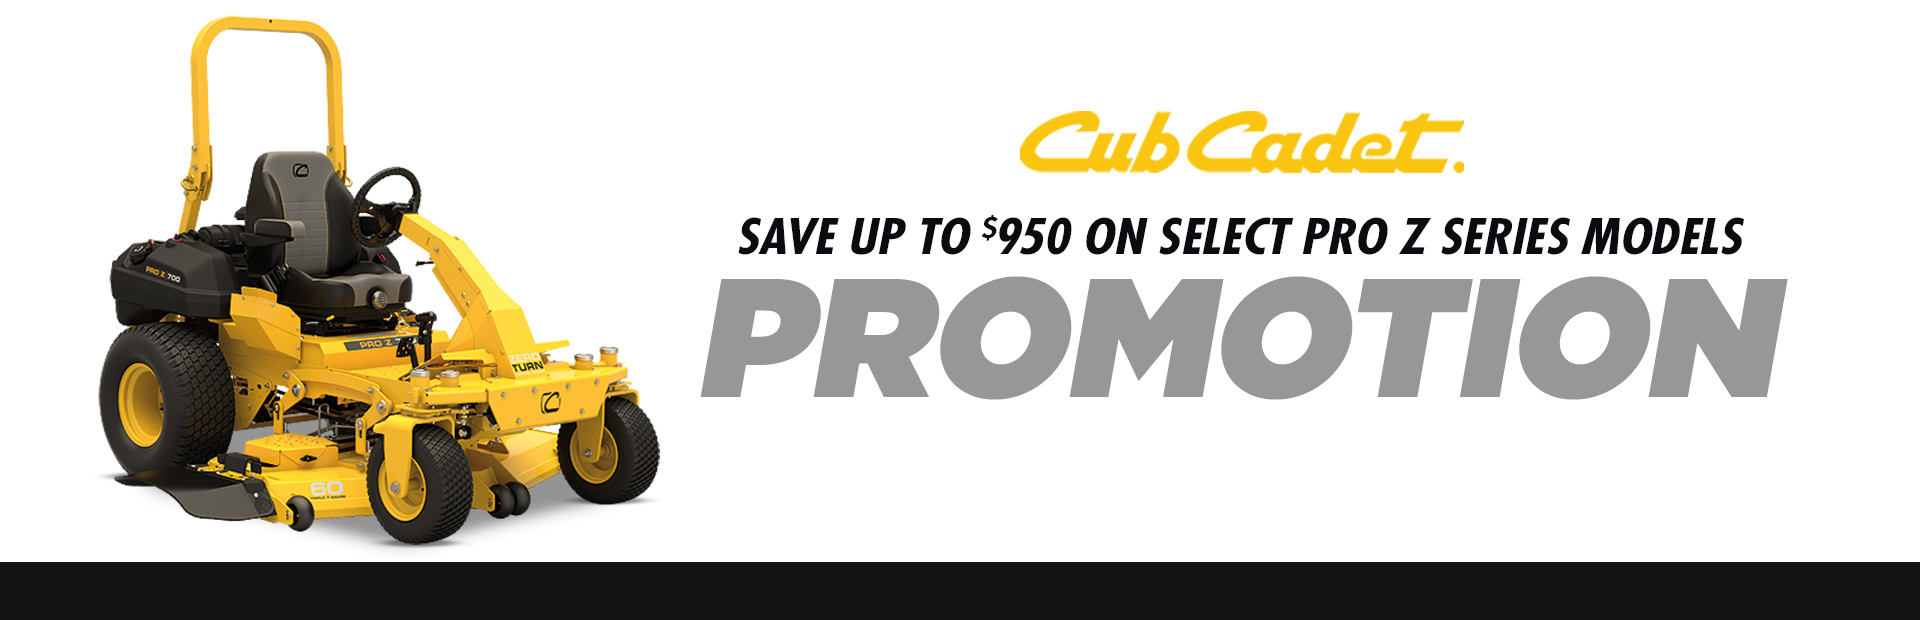 Cub Cadet:  SAVE UP TO $950 ON SELECT PRO Z SERIES MODELS